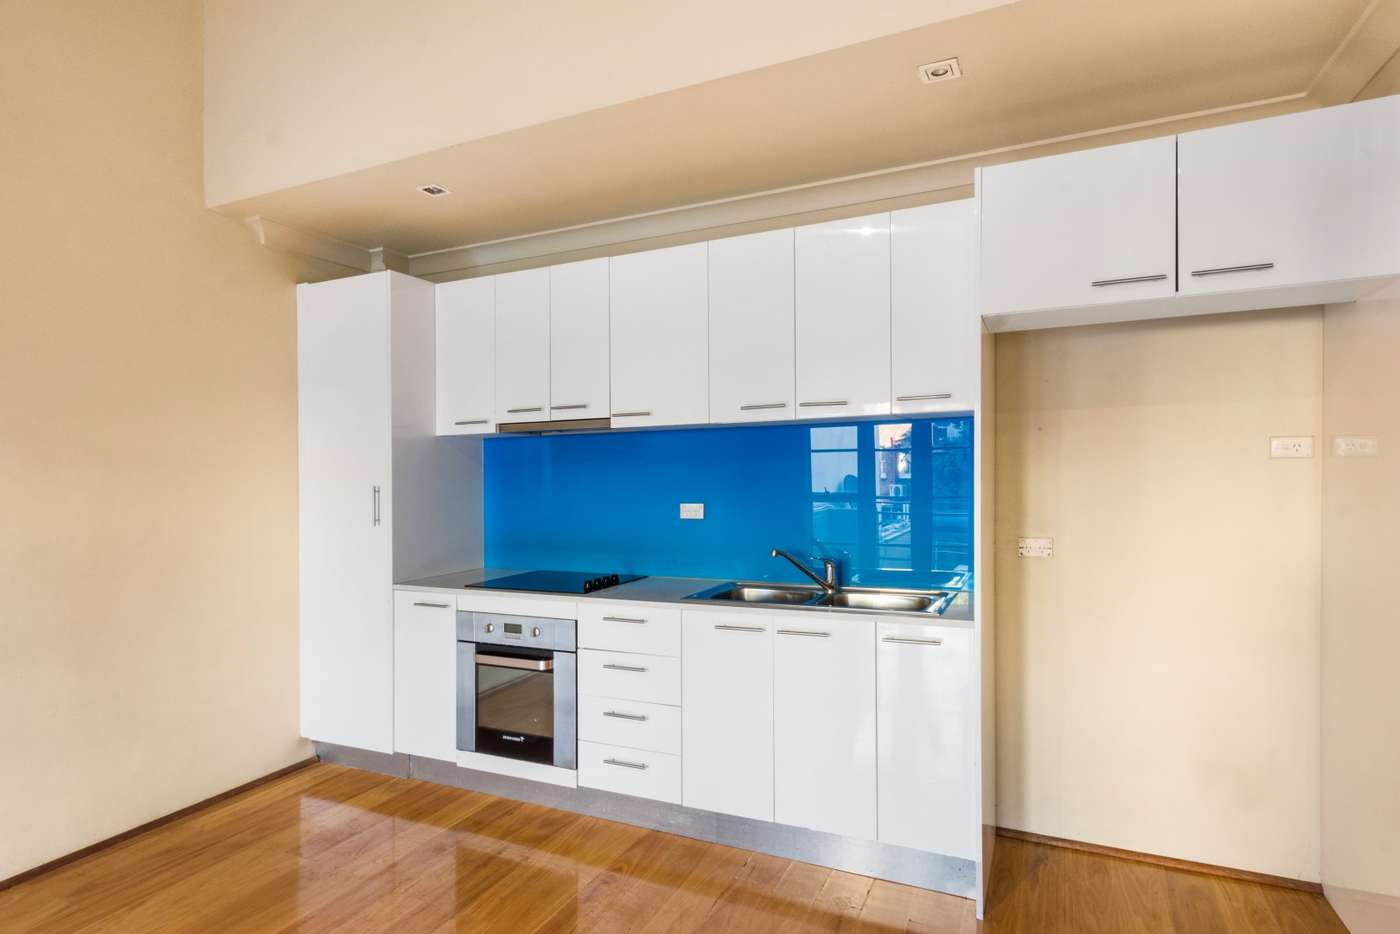 Main view of Homely apartment listing, 2/300 Victoria Street ( Entrance from Nimrod St ), Darlinghurst, NSW 2010